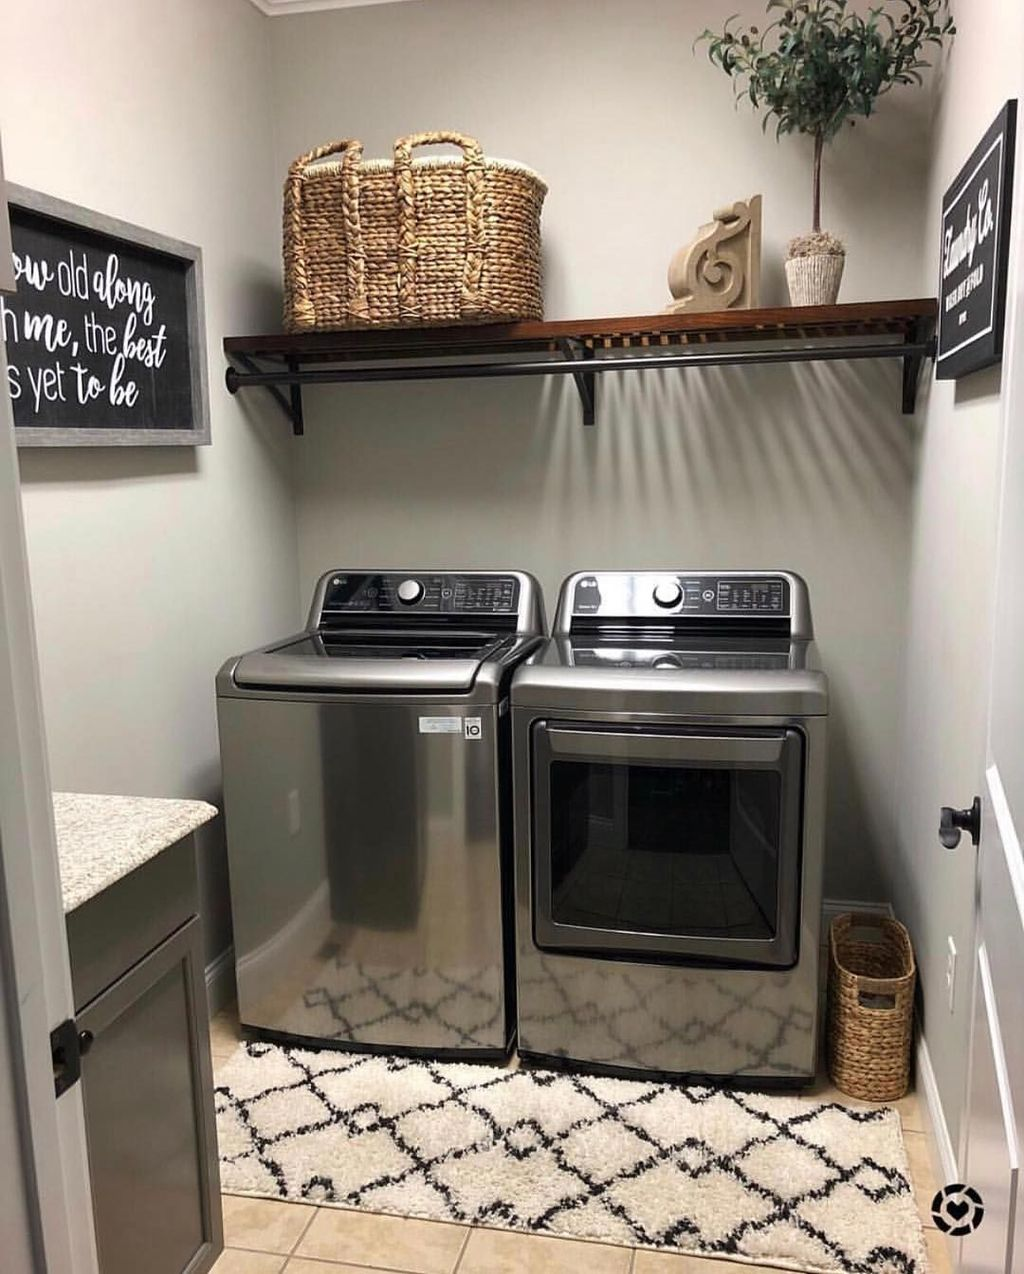 Inspiring Small Laundry Room Design And Decor Ideas 23